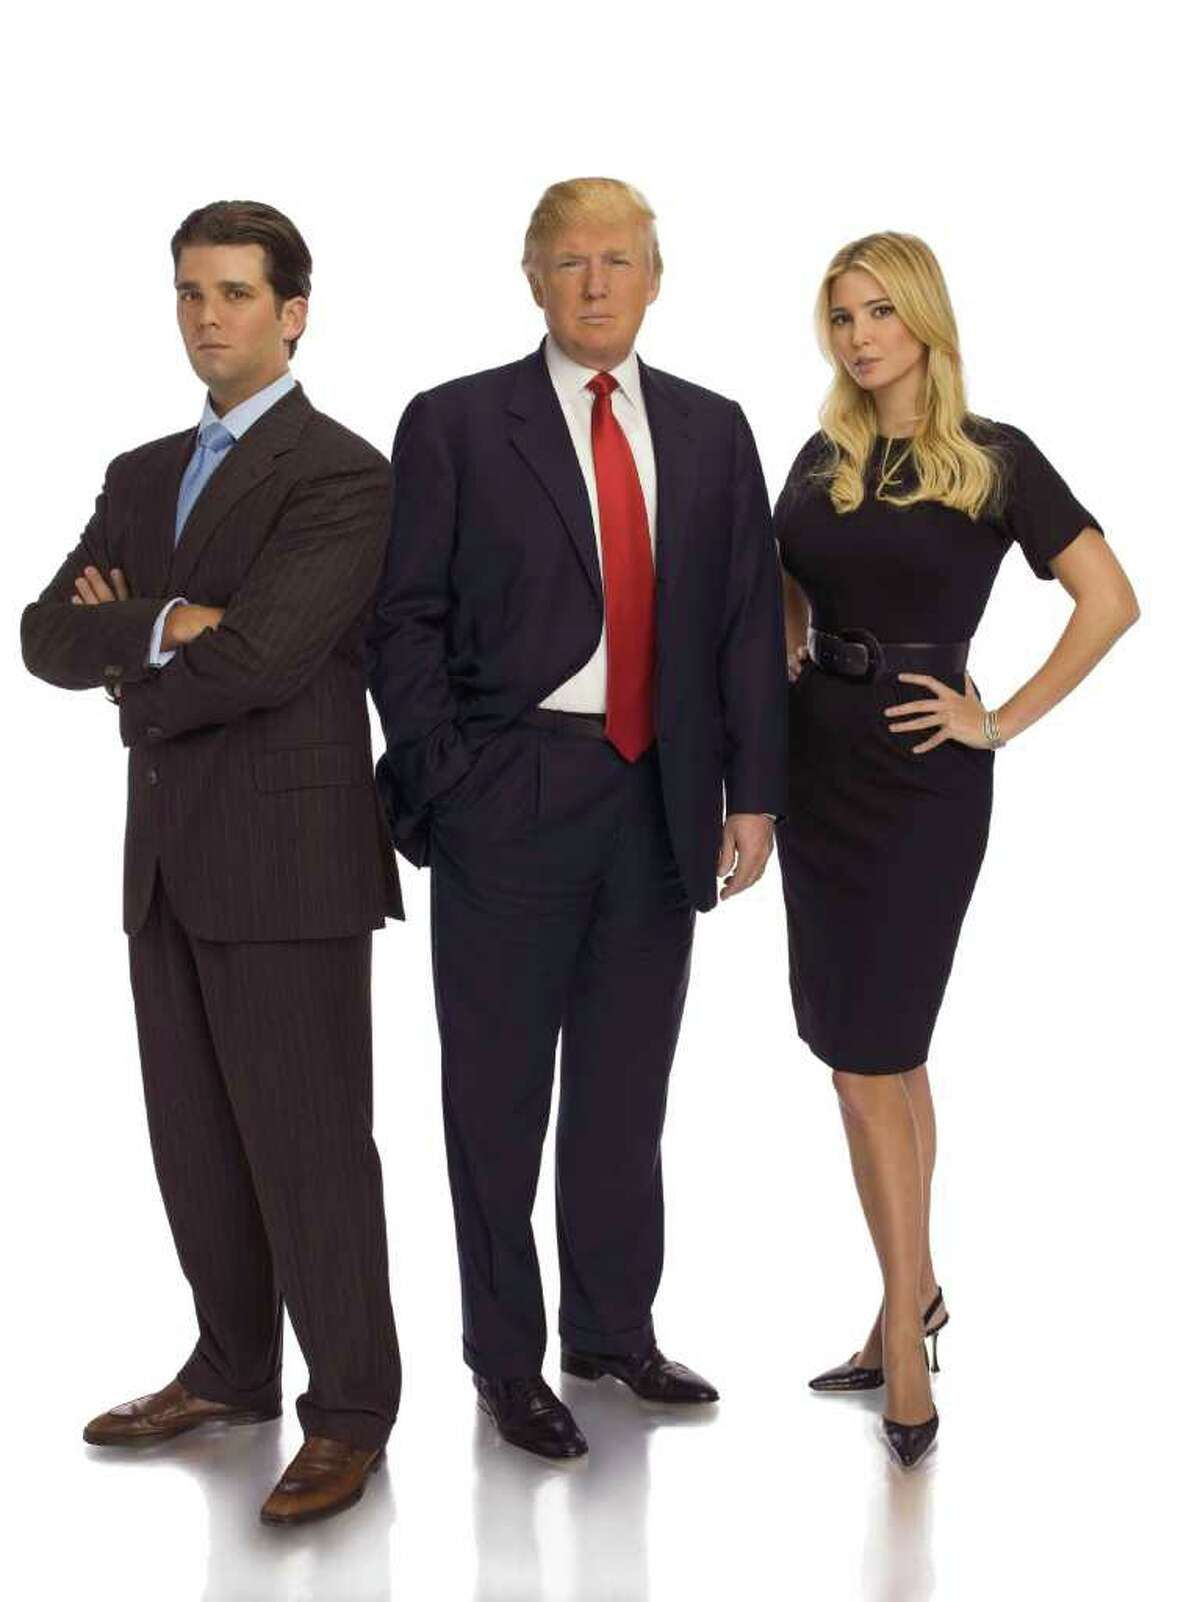 THE APPRENTICE -- Pictured: (l-r) Donald Trump, Jr., Donald Trump, Ivanka Trump -- NBC Photo: Virginia Sherwood